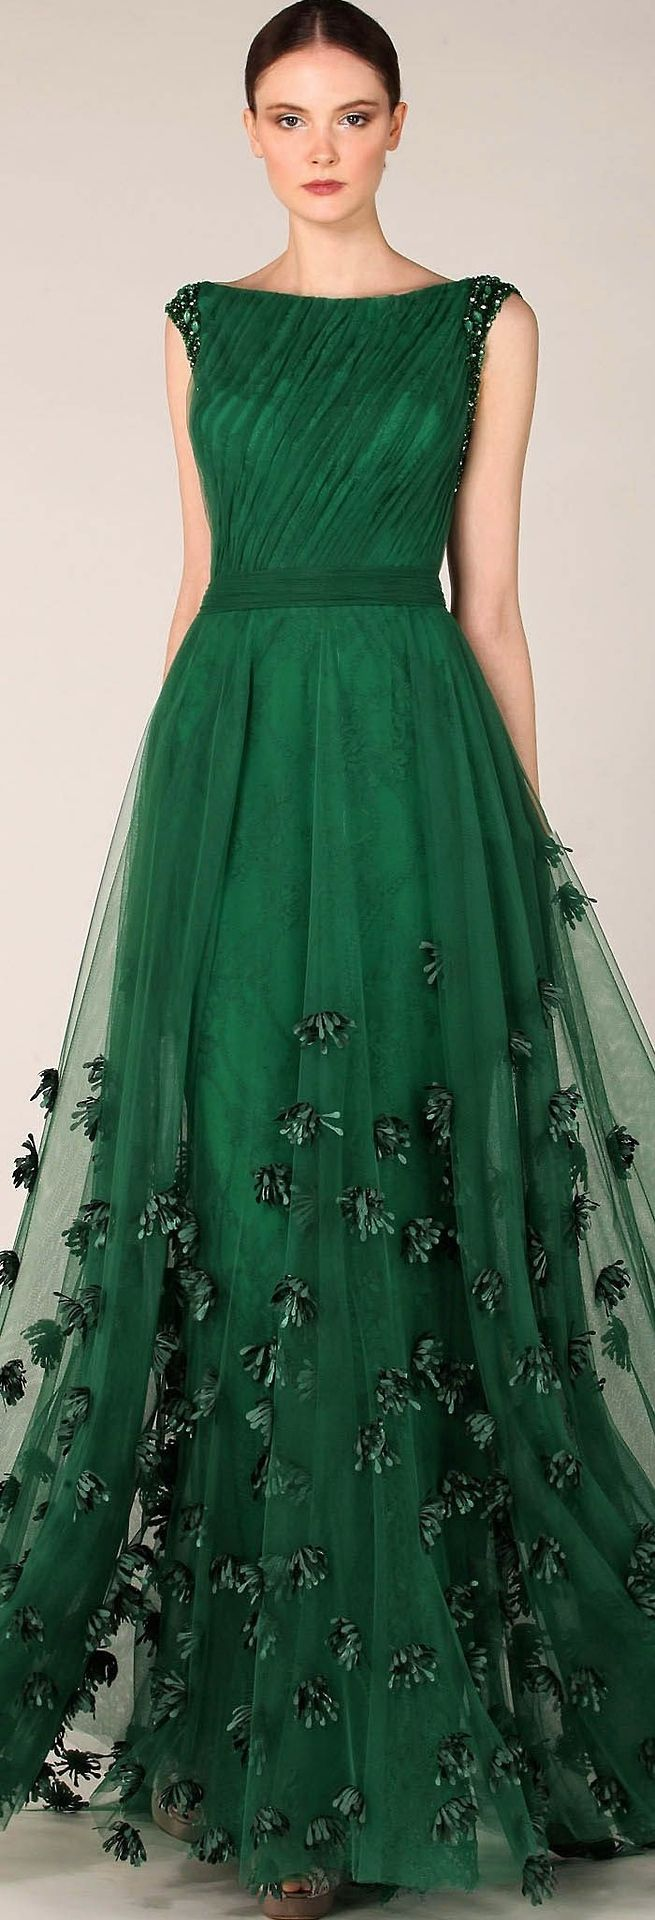 Green dress for wedding party   best images about Dresses on Pinterest